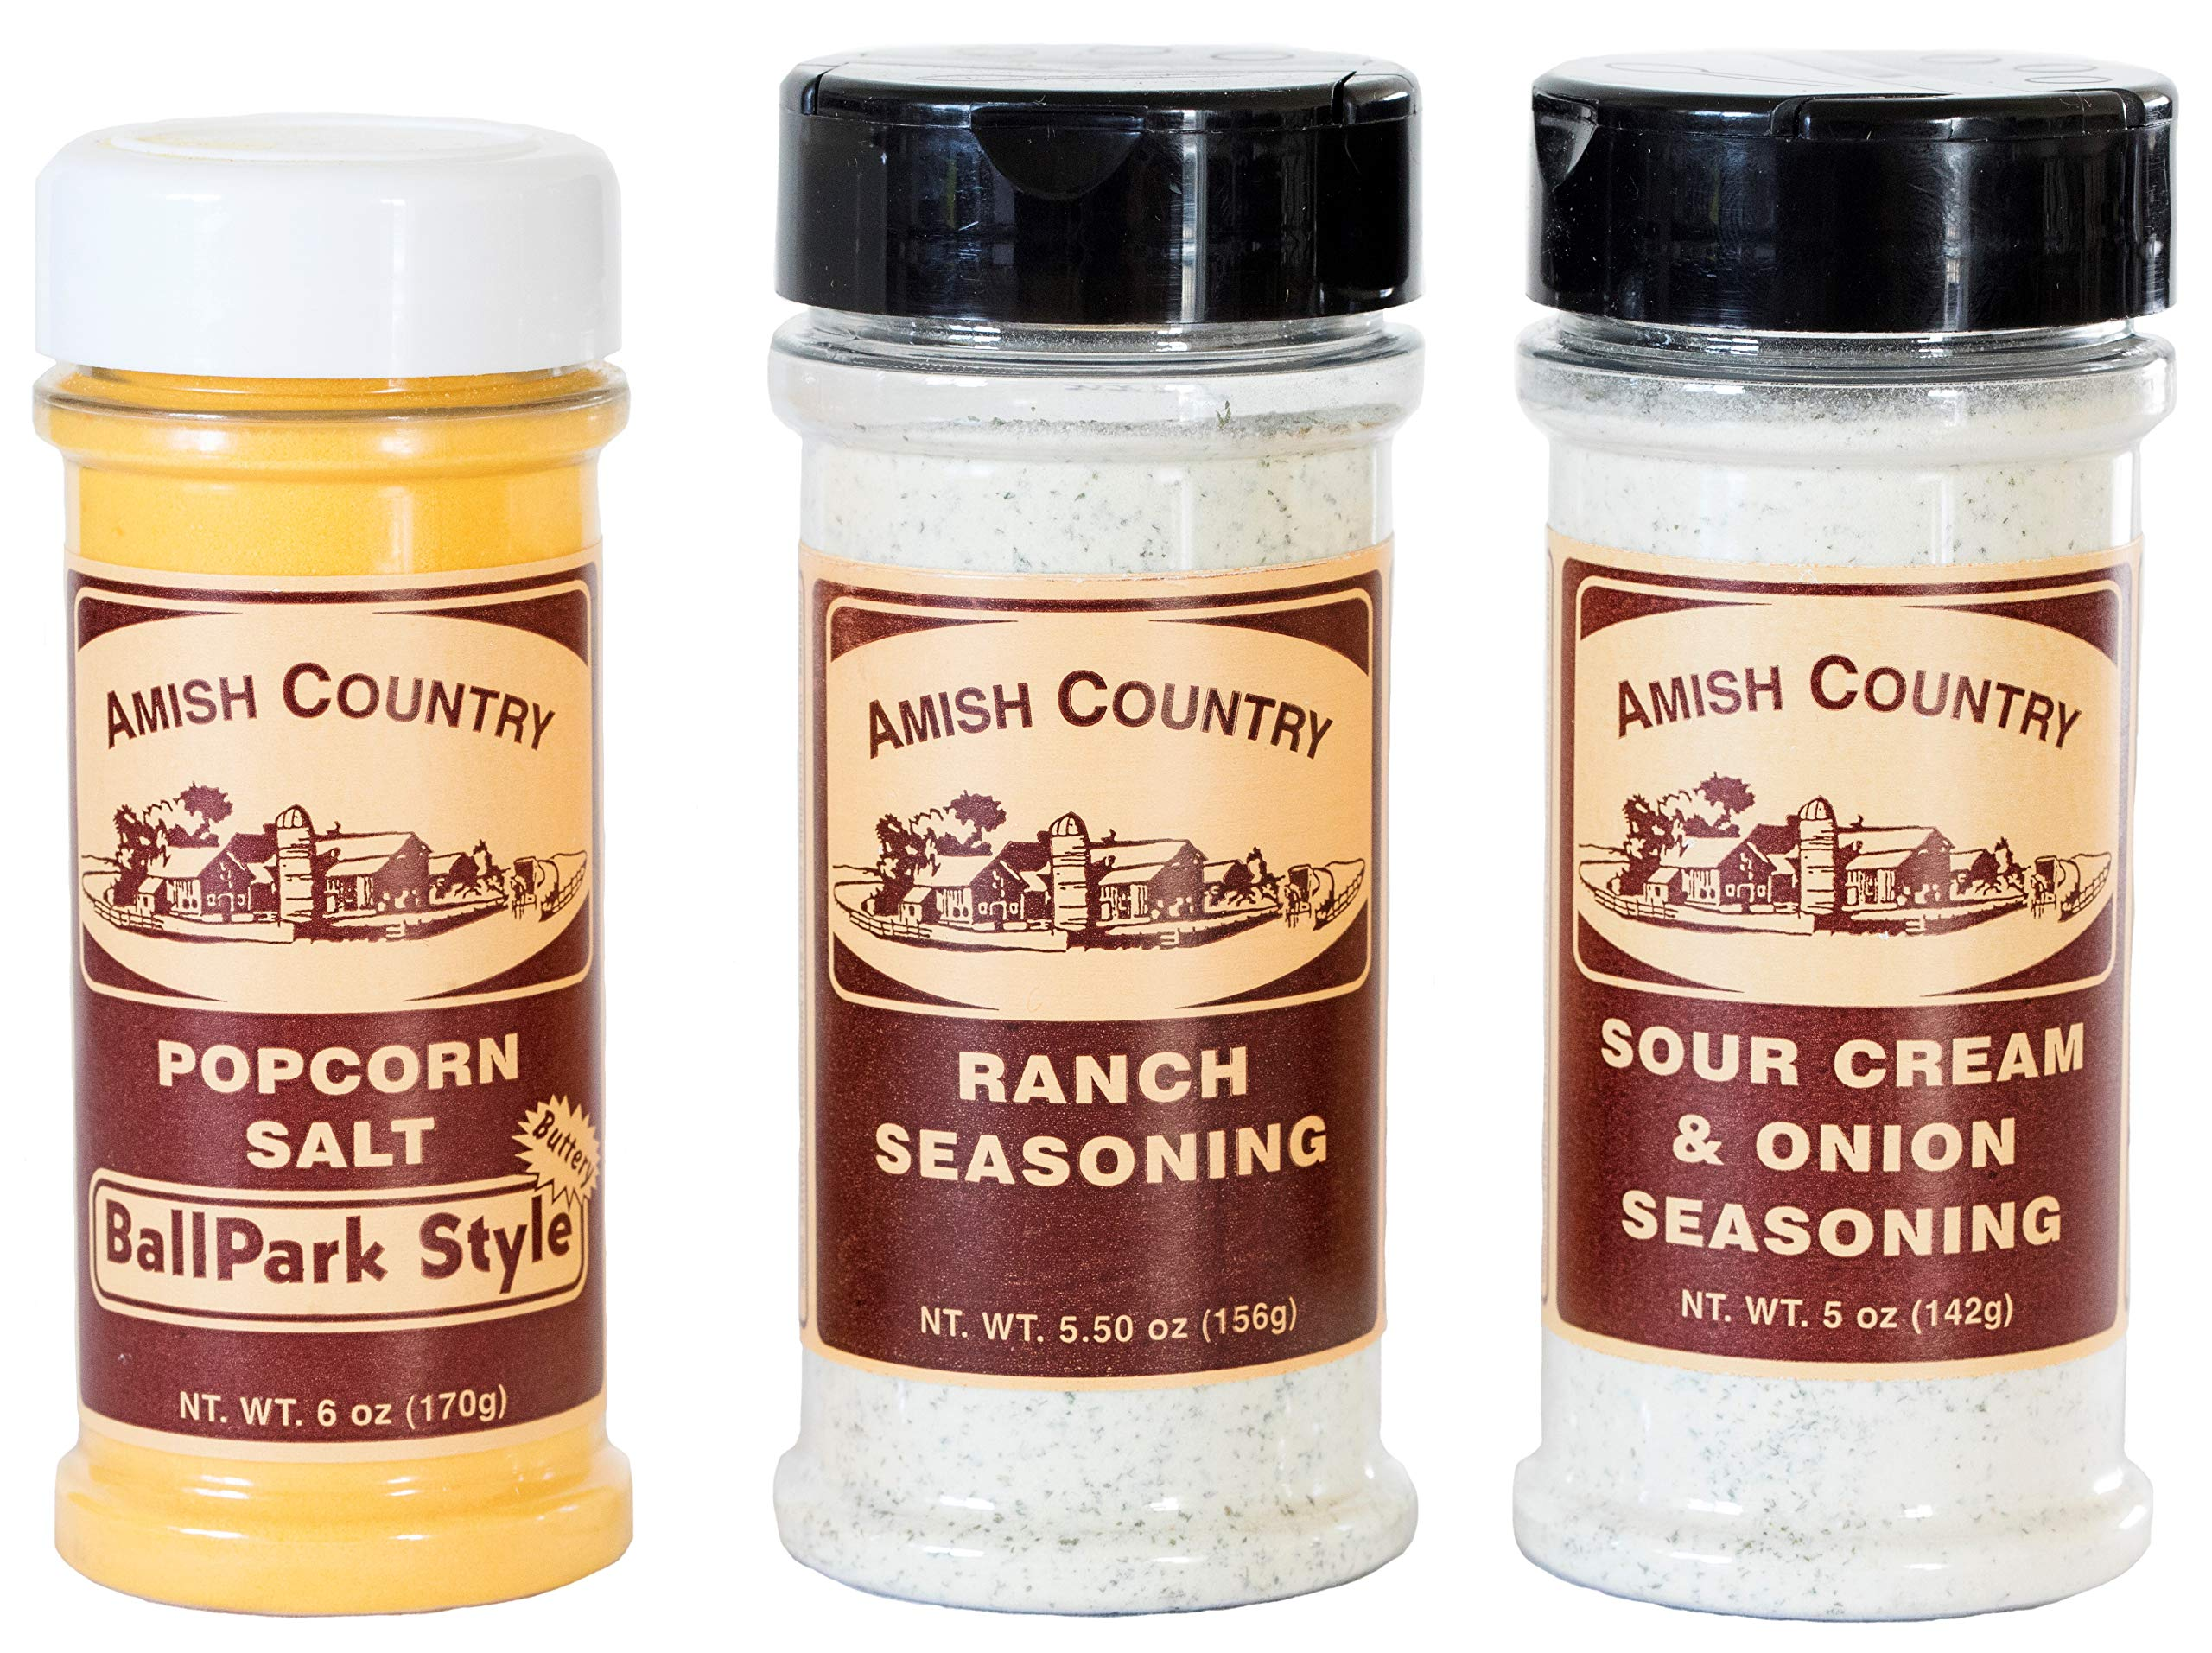 Amish Country Popcorn - Ballpark Style ButterSalt (6 Oz), Ranch (5.5 Oz) & Sour Cream (5 Oz) Popcorn Seasoning - Old Fashioned with Recipe Guide